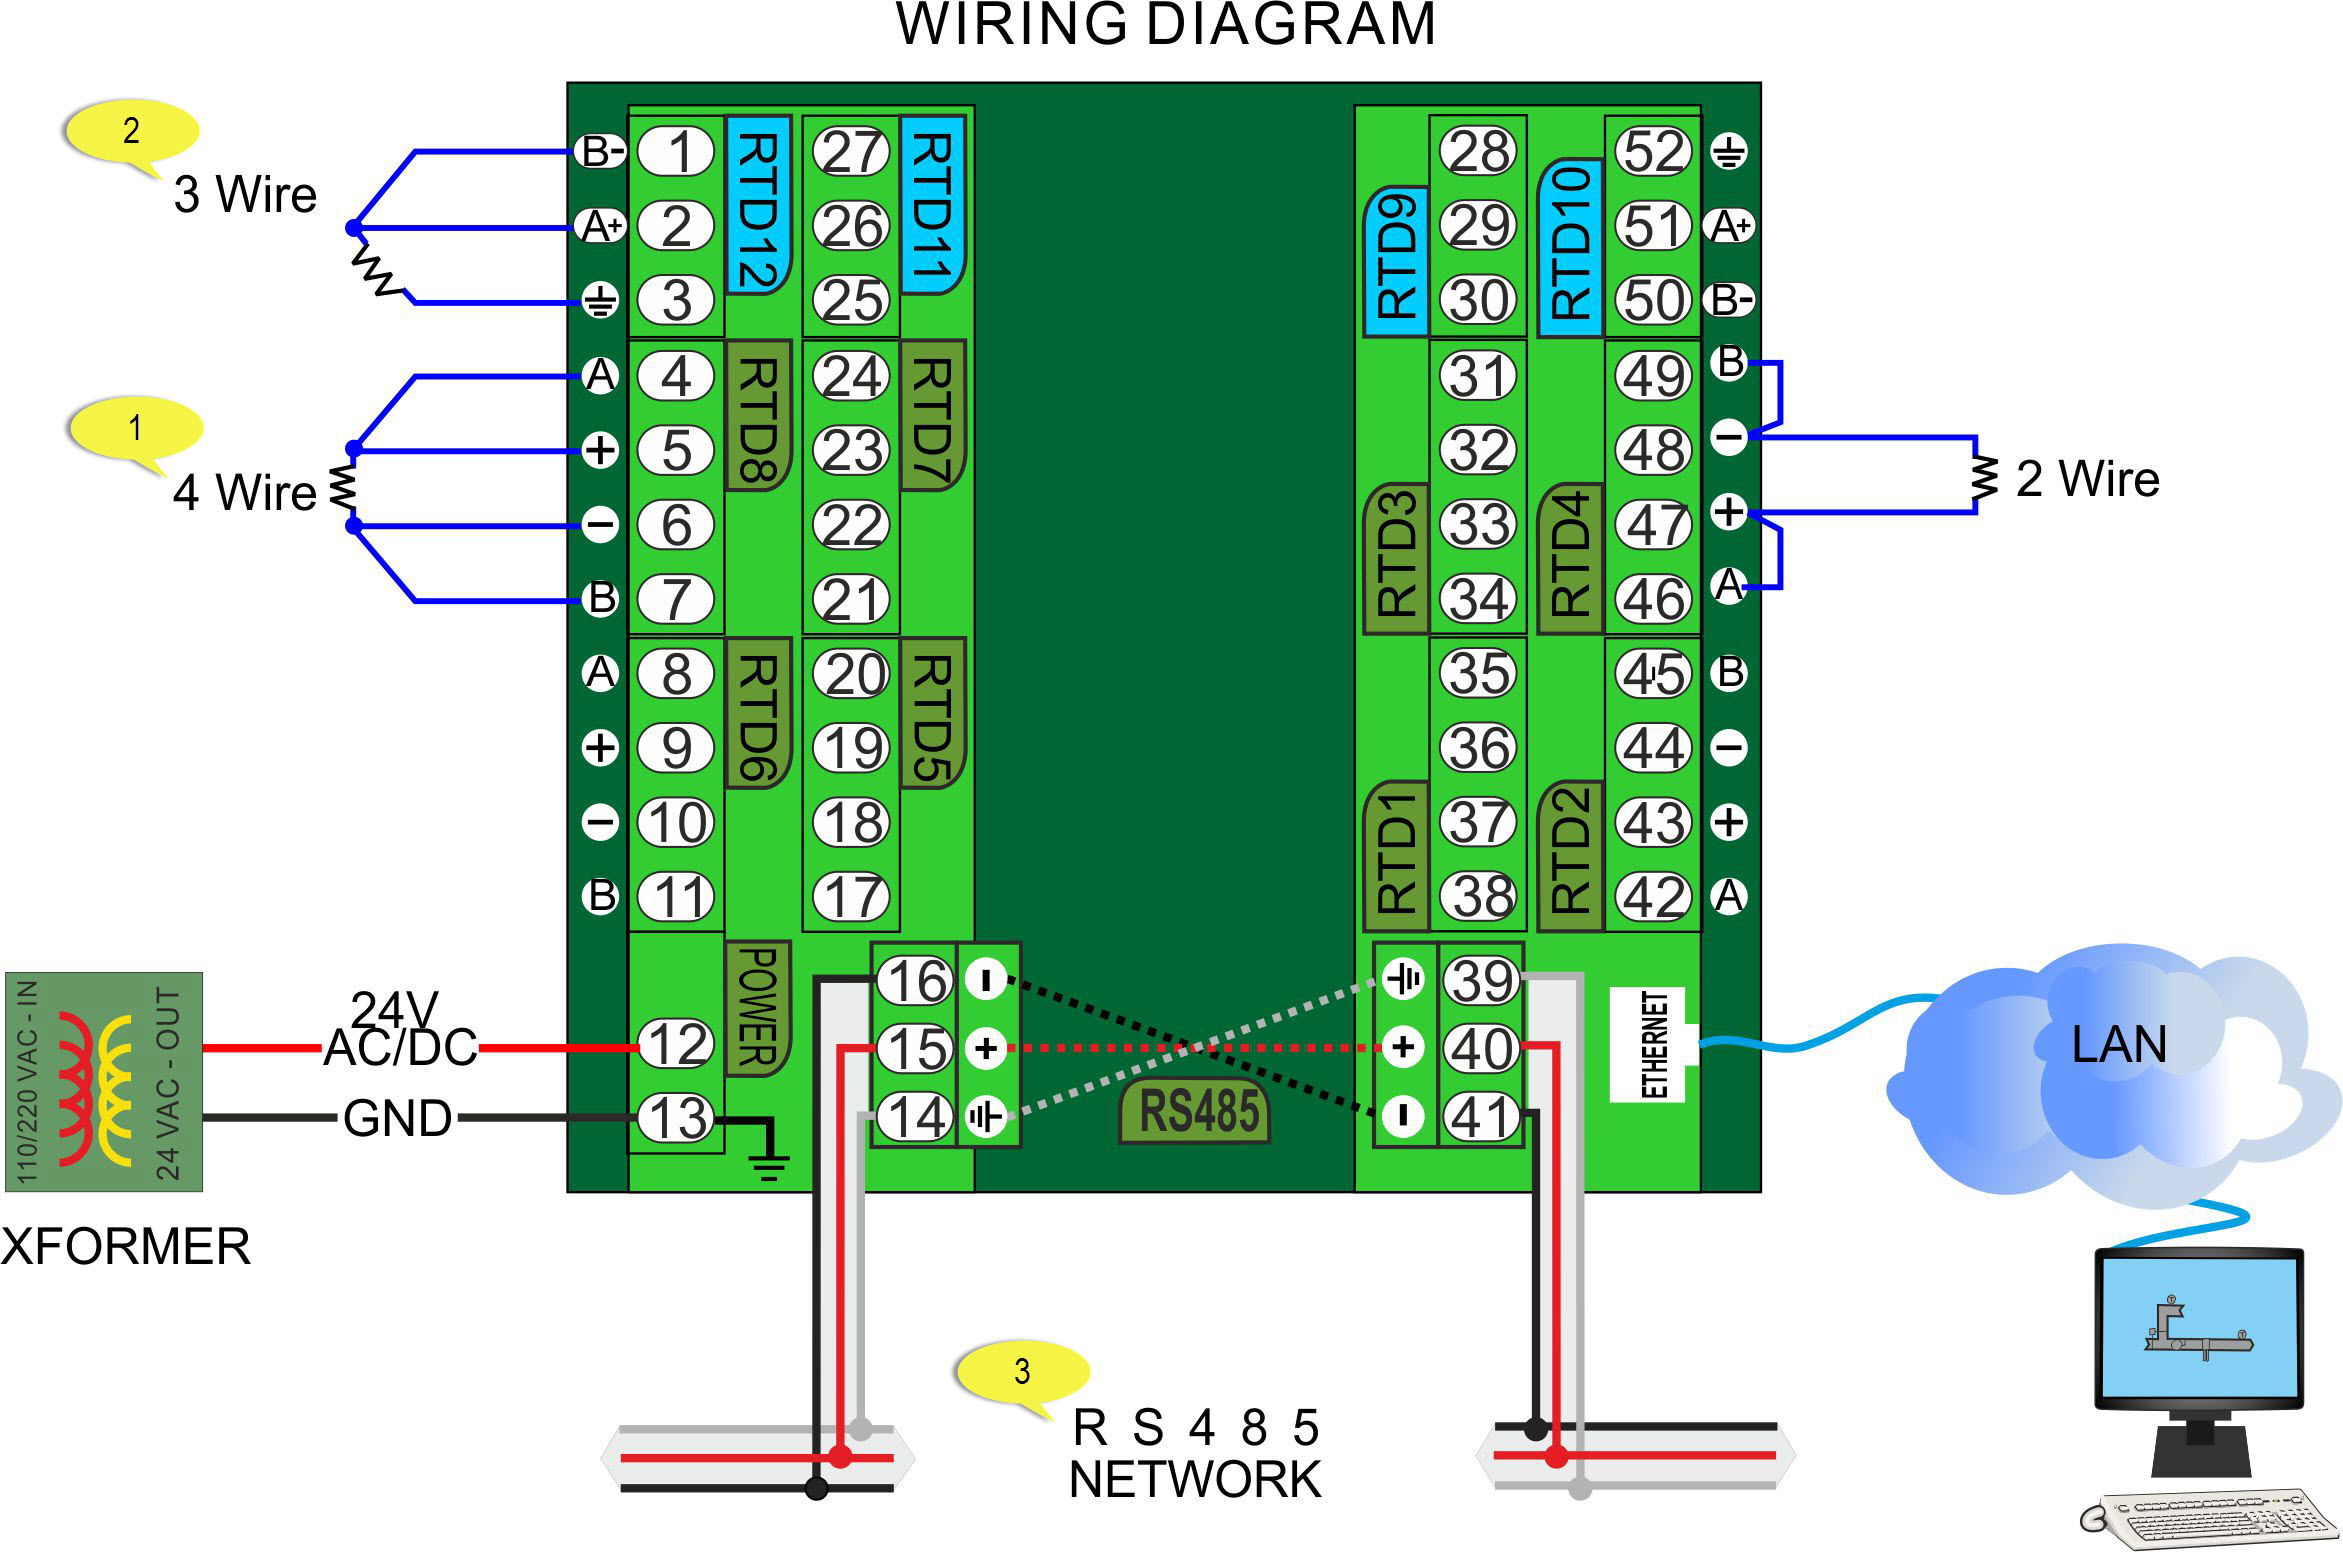 Rtd Connection Diagram 2wire Vs 3 Wire | Wiring Library